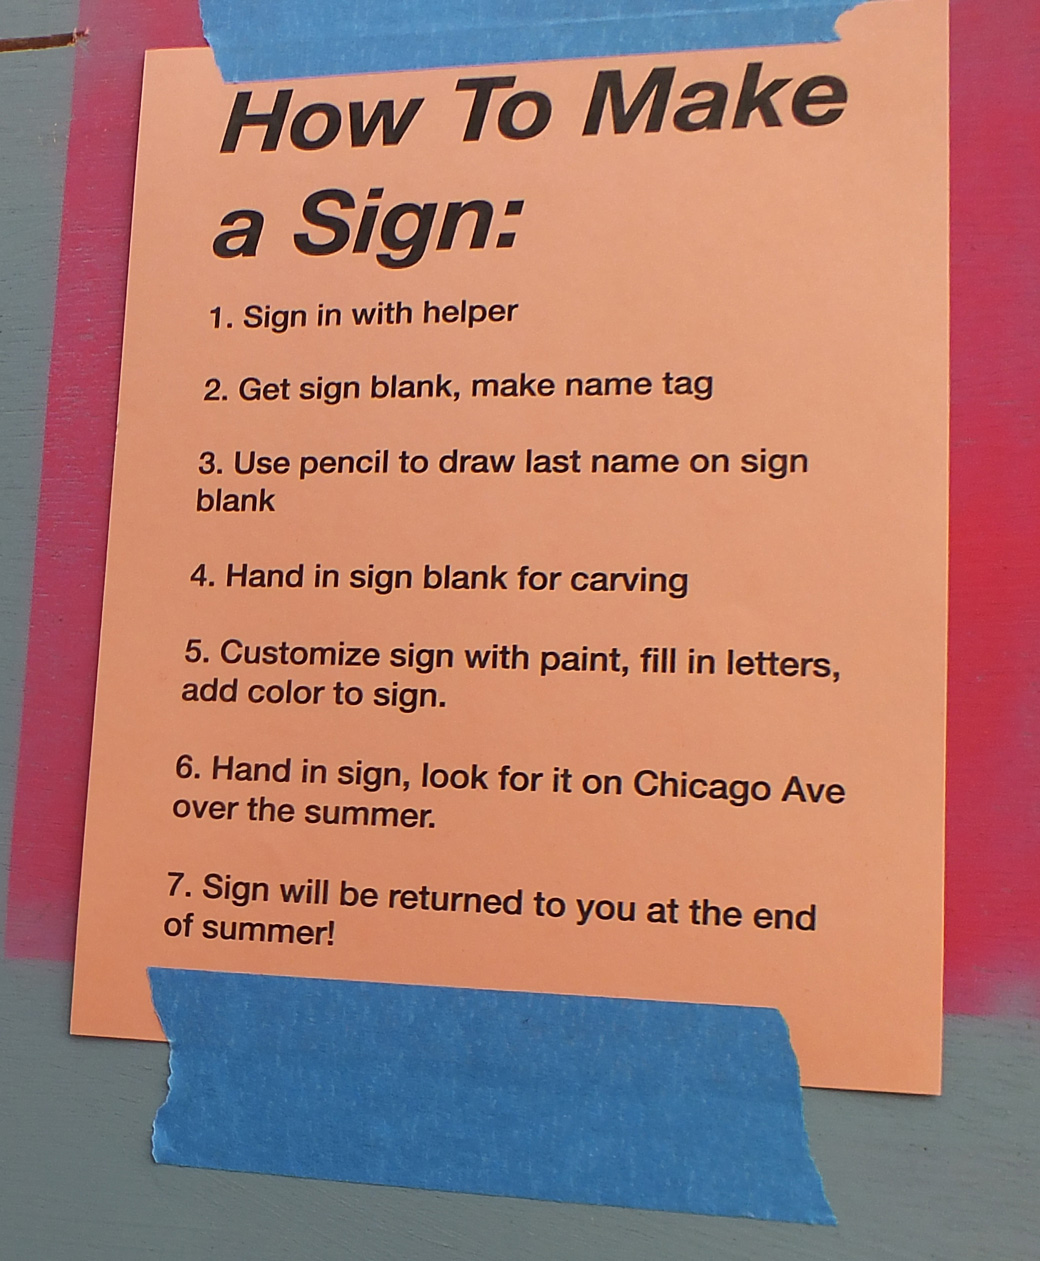 How to Make a Sign.